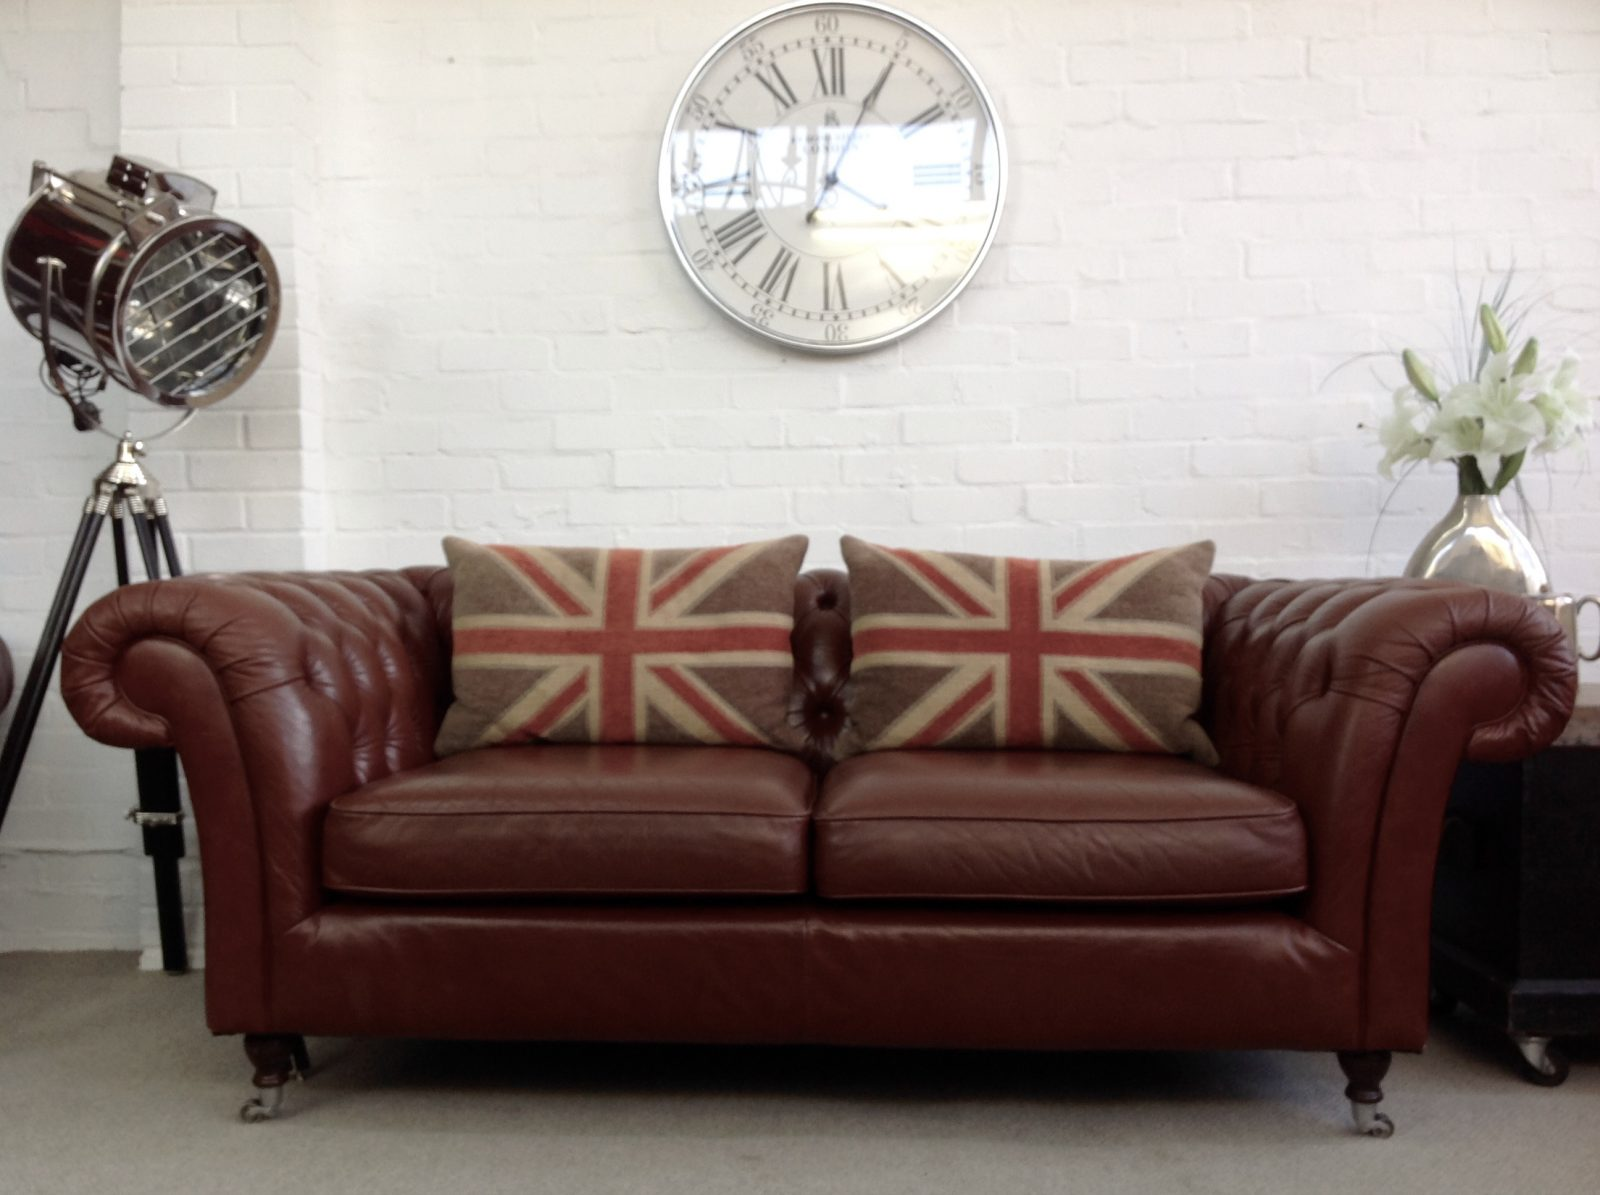 Sienna Brown 3 Seater Chesterfield Sofa.